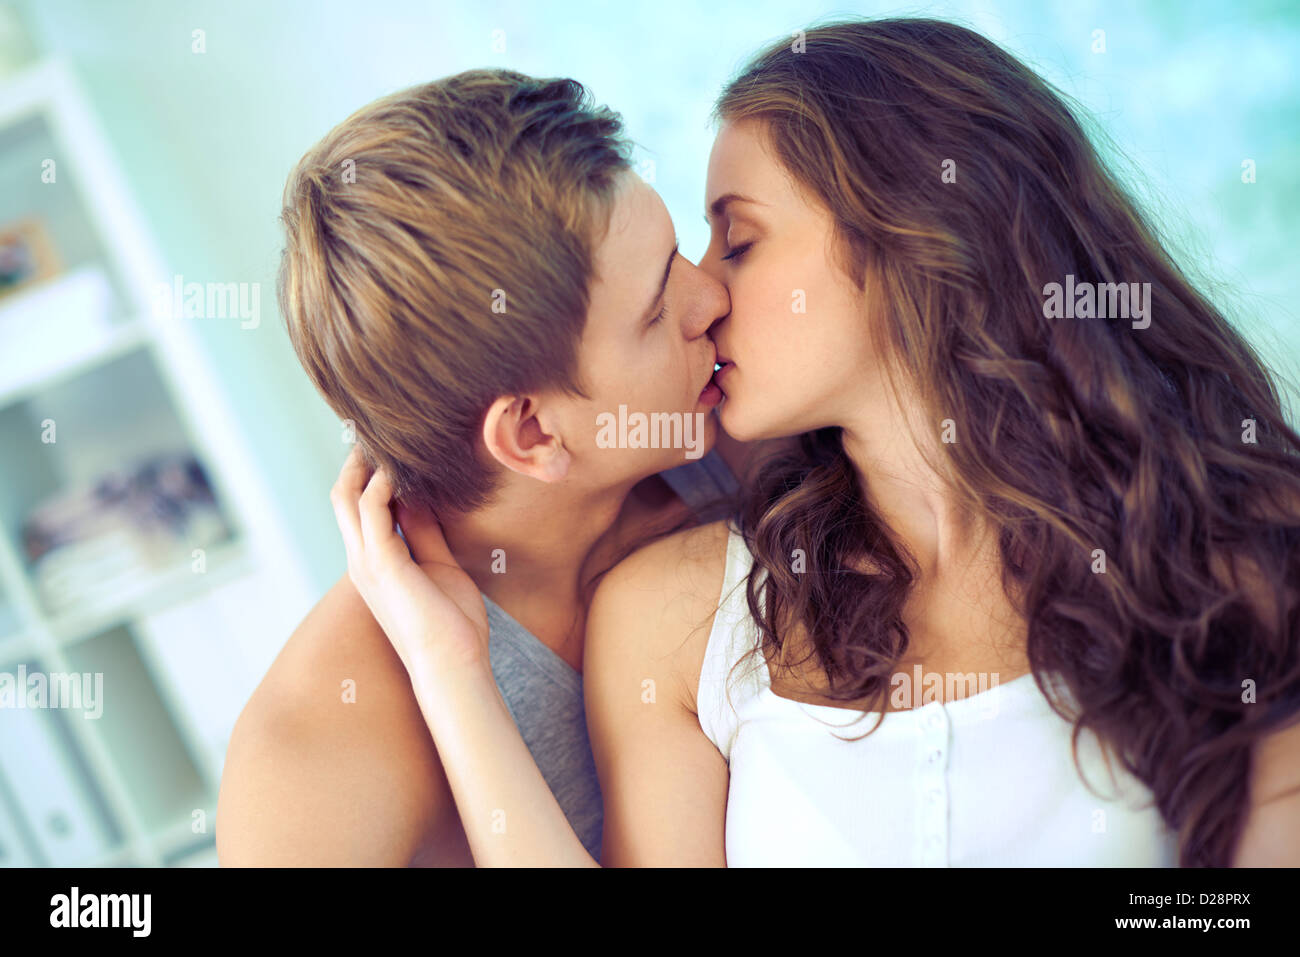 Young affectionate couple kissing tenderly - Stock Image